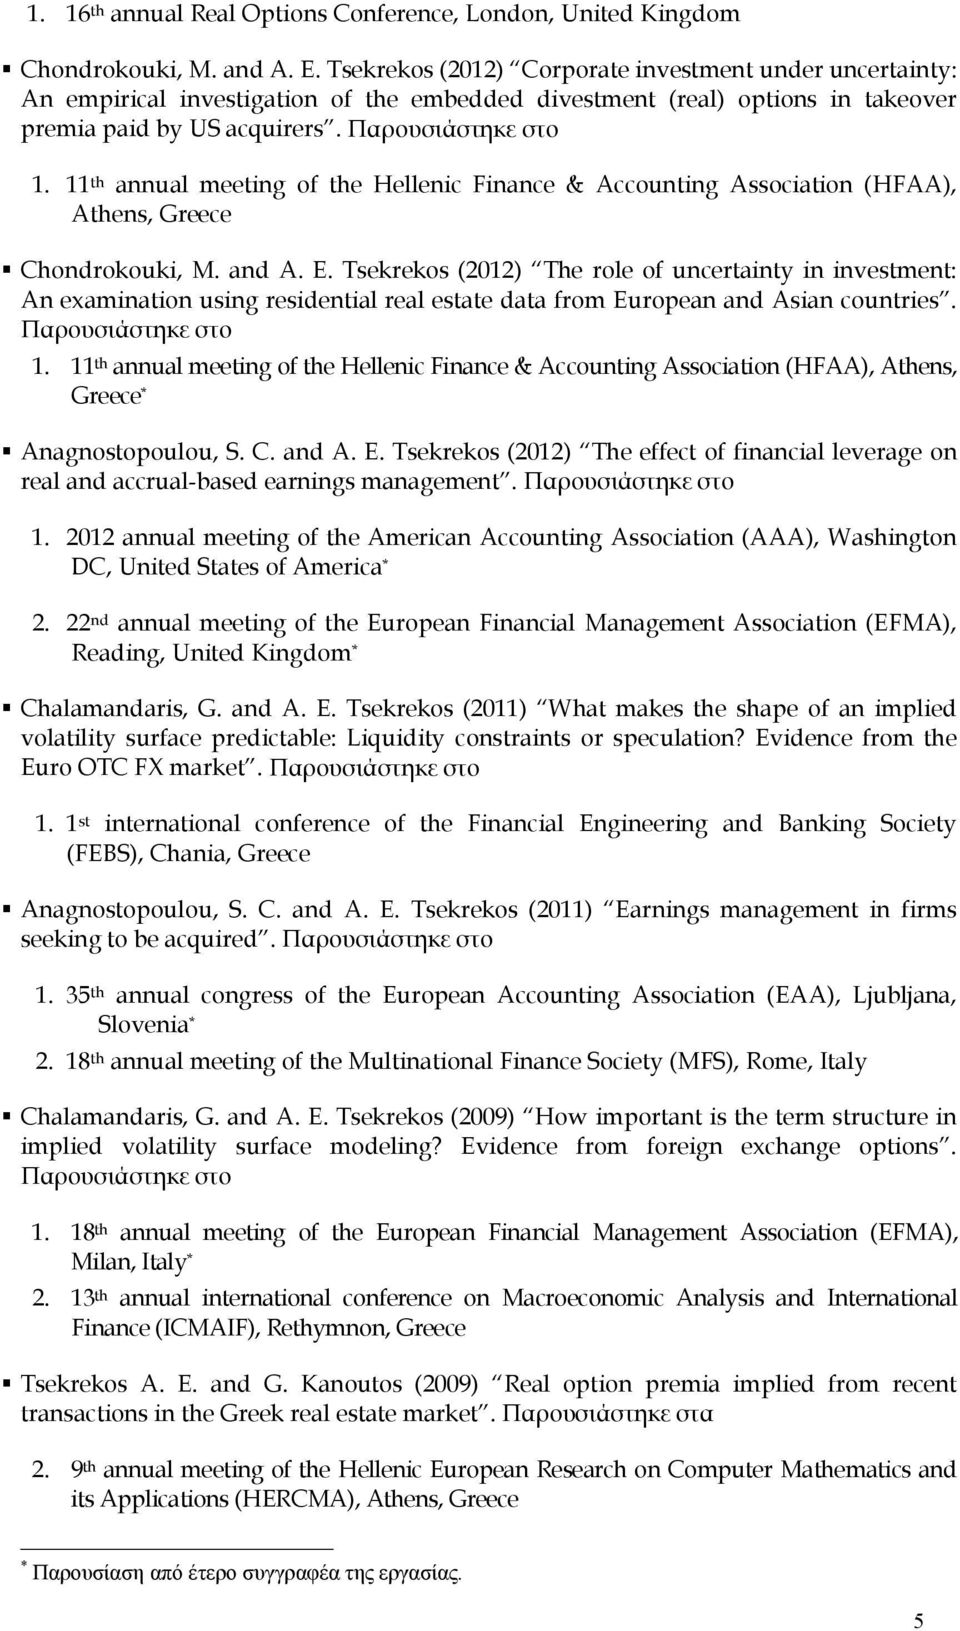 11 th annual meeting of the Hellenic Finance & Accounting Association (HFAA), Athens, Greece Chondrokouki, M. and A. E.